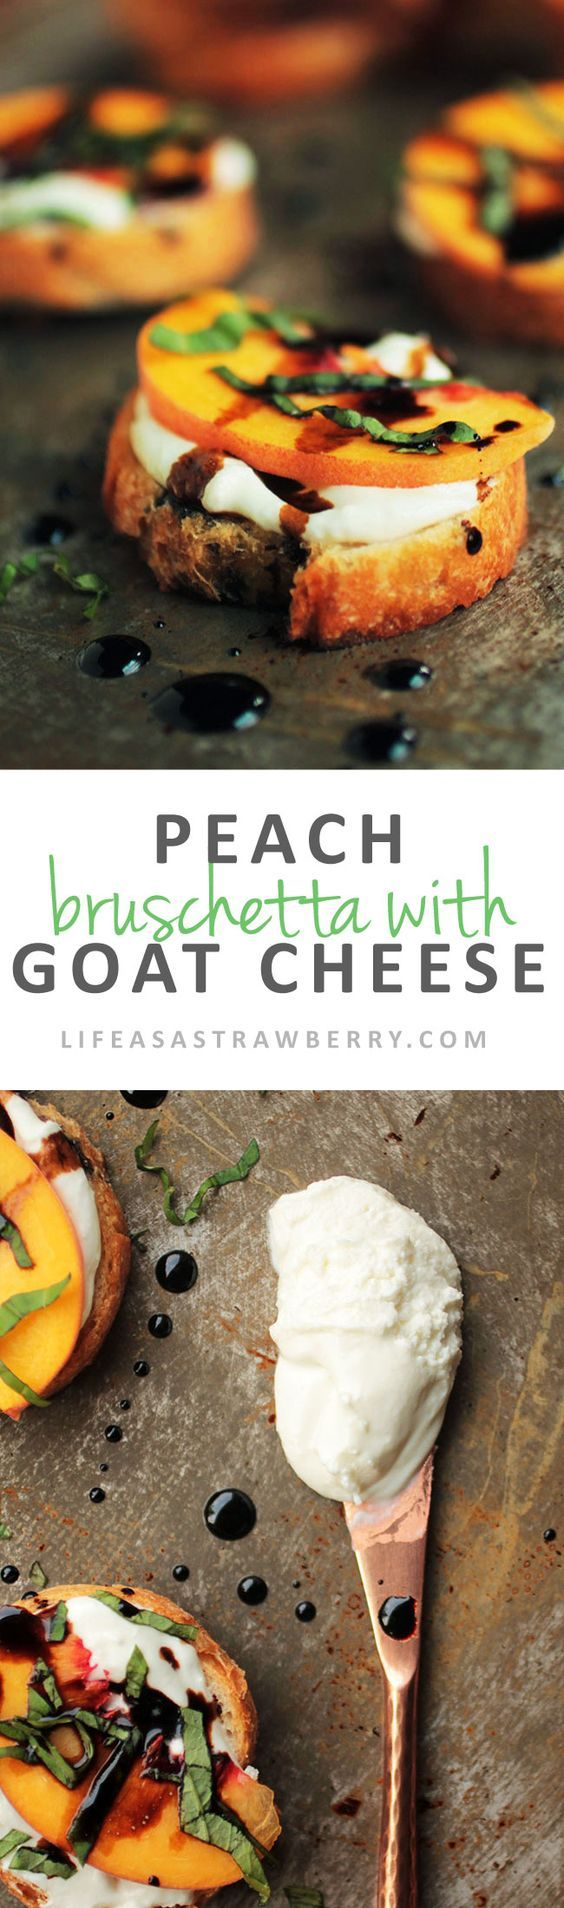 Peach Bruschetta with Whipped Goat Cheese - This easy crostini appetizer has a delicious whipped goat cheese base, topped with fresh peaches, balsamic vinegar drizzle, and fresh basil. Perfect for entertaining or as a light dinner! Vegetarian. (Goat Cheese Bites)